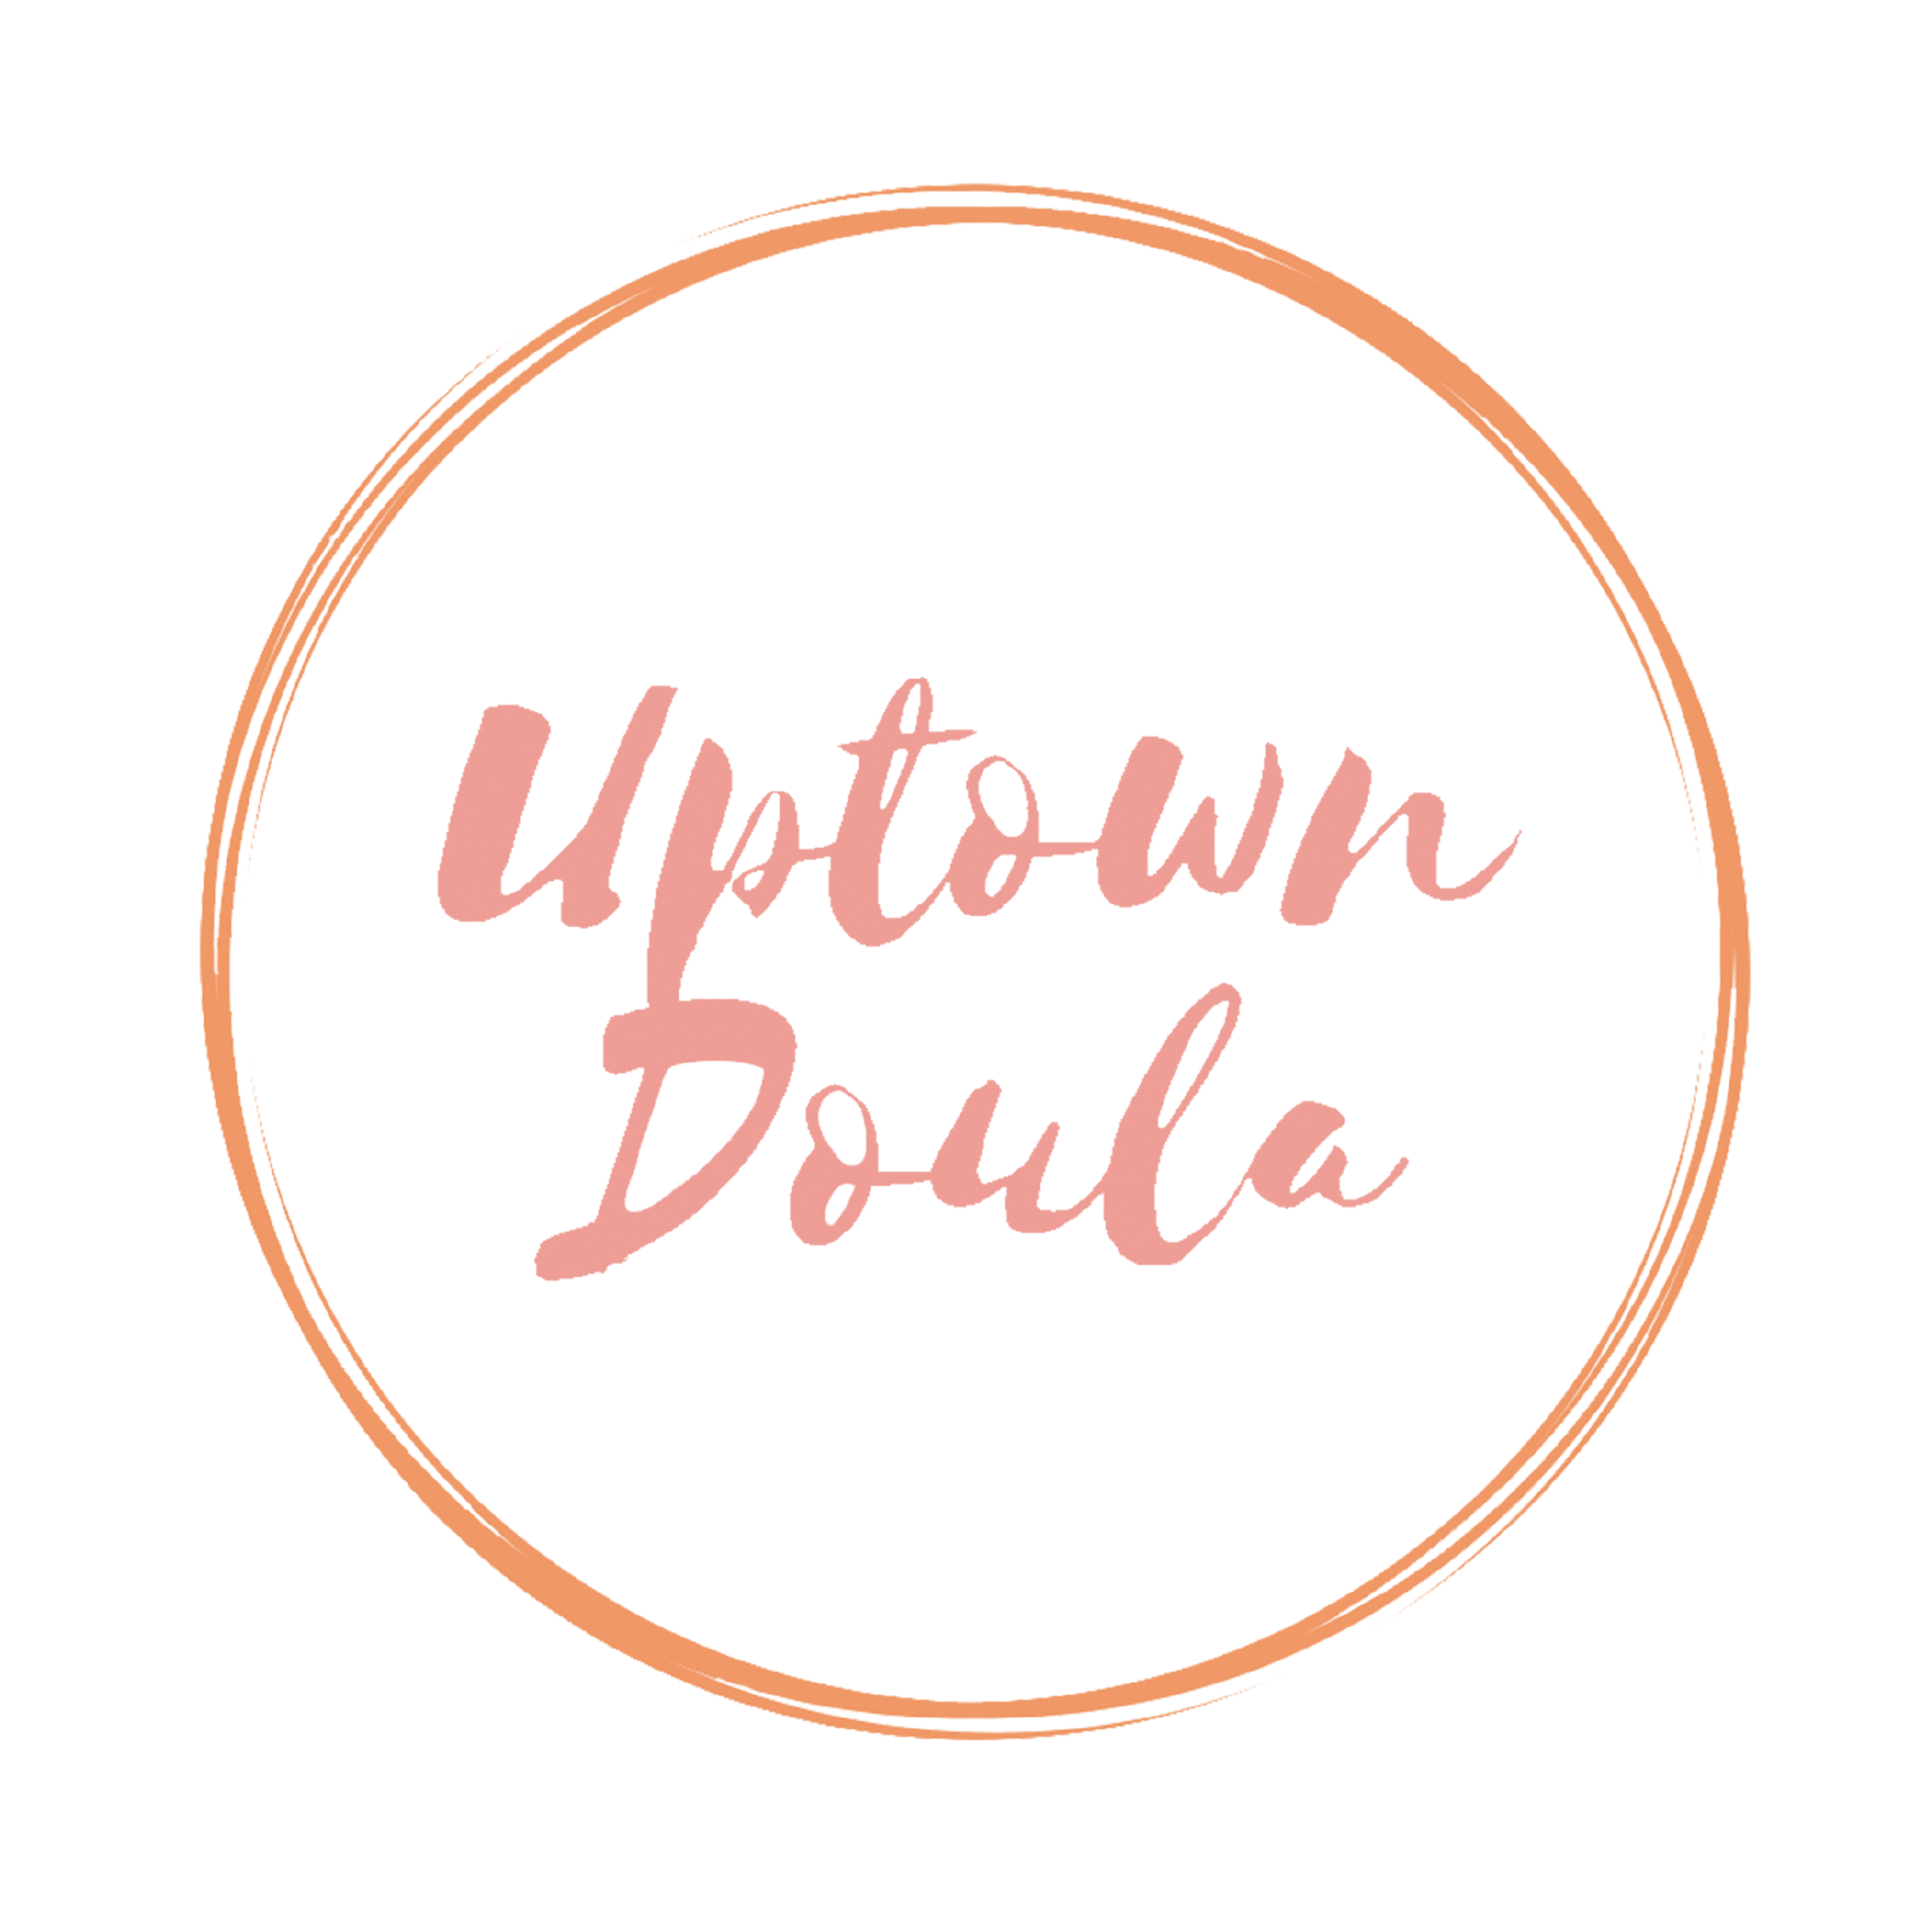 Uptown Doula